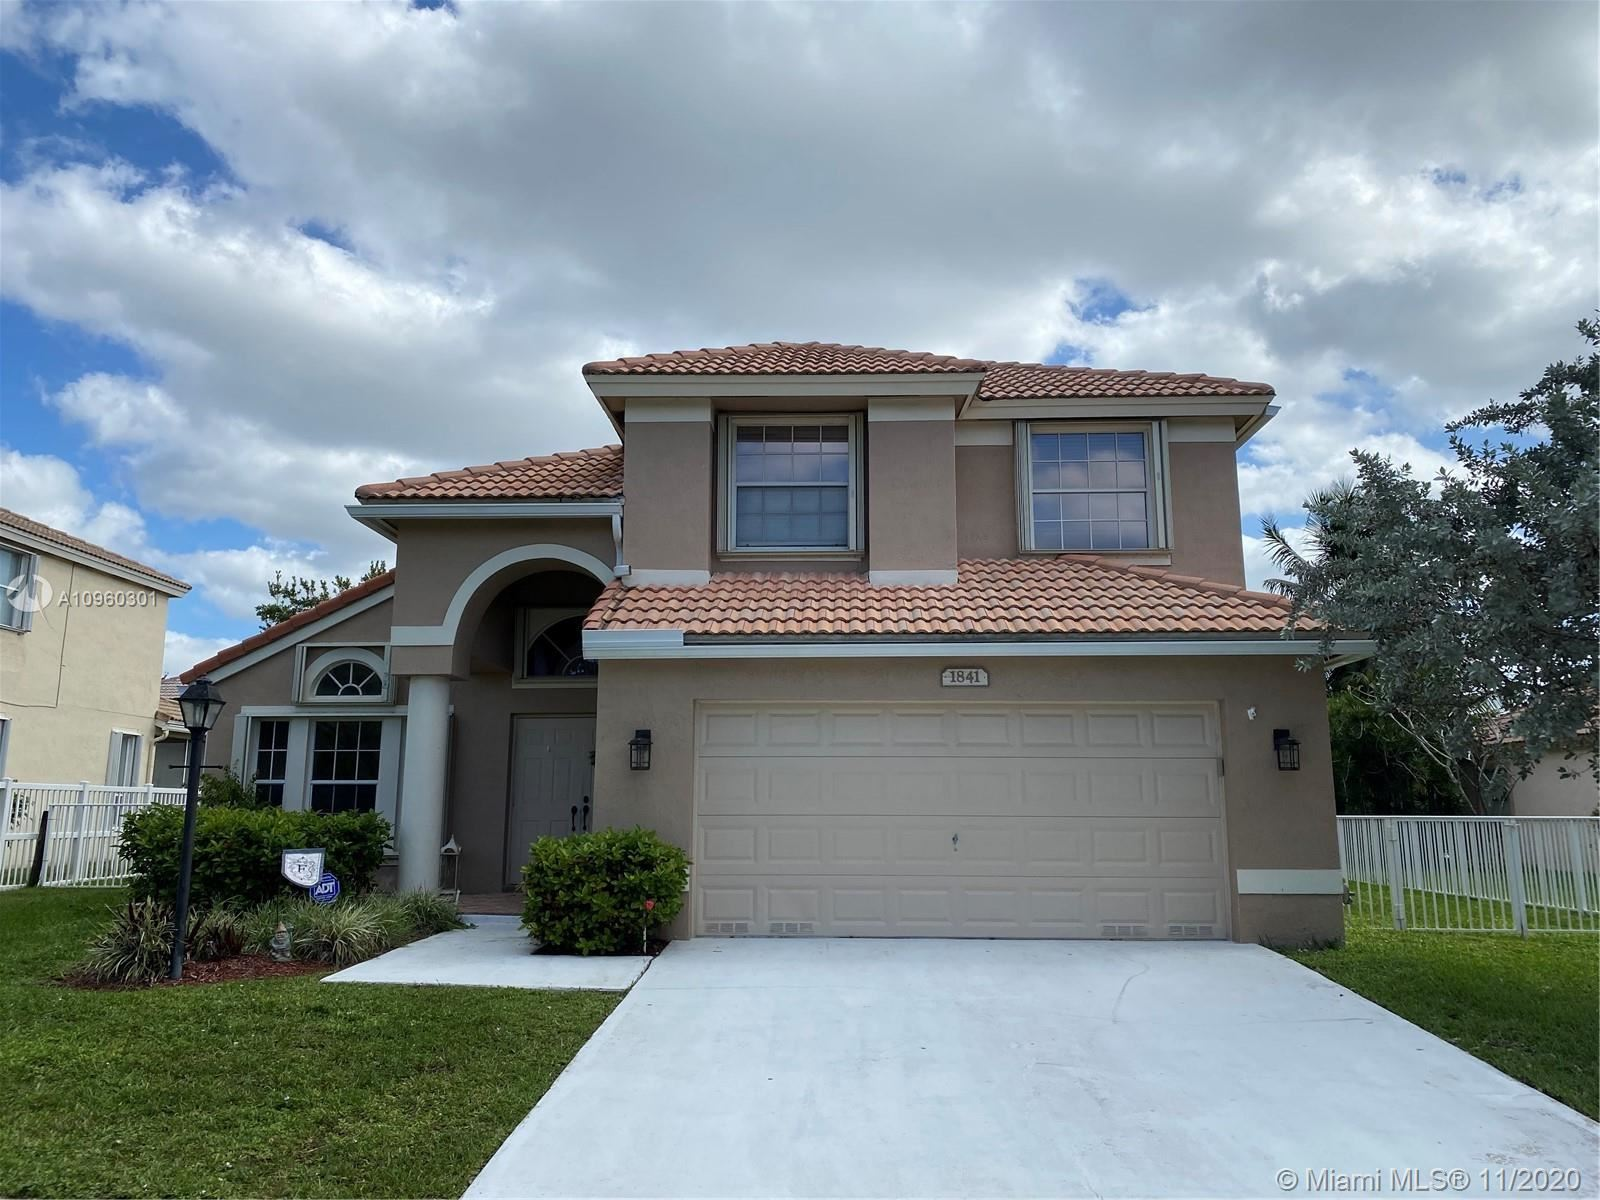 Photo of 1841 NW 131st Ave, Pembroke Pines, FL 33028 (MLS # A10960301)